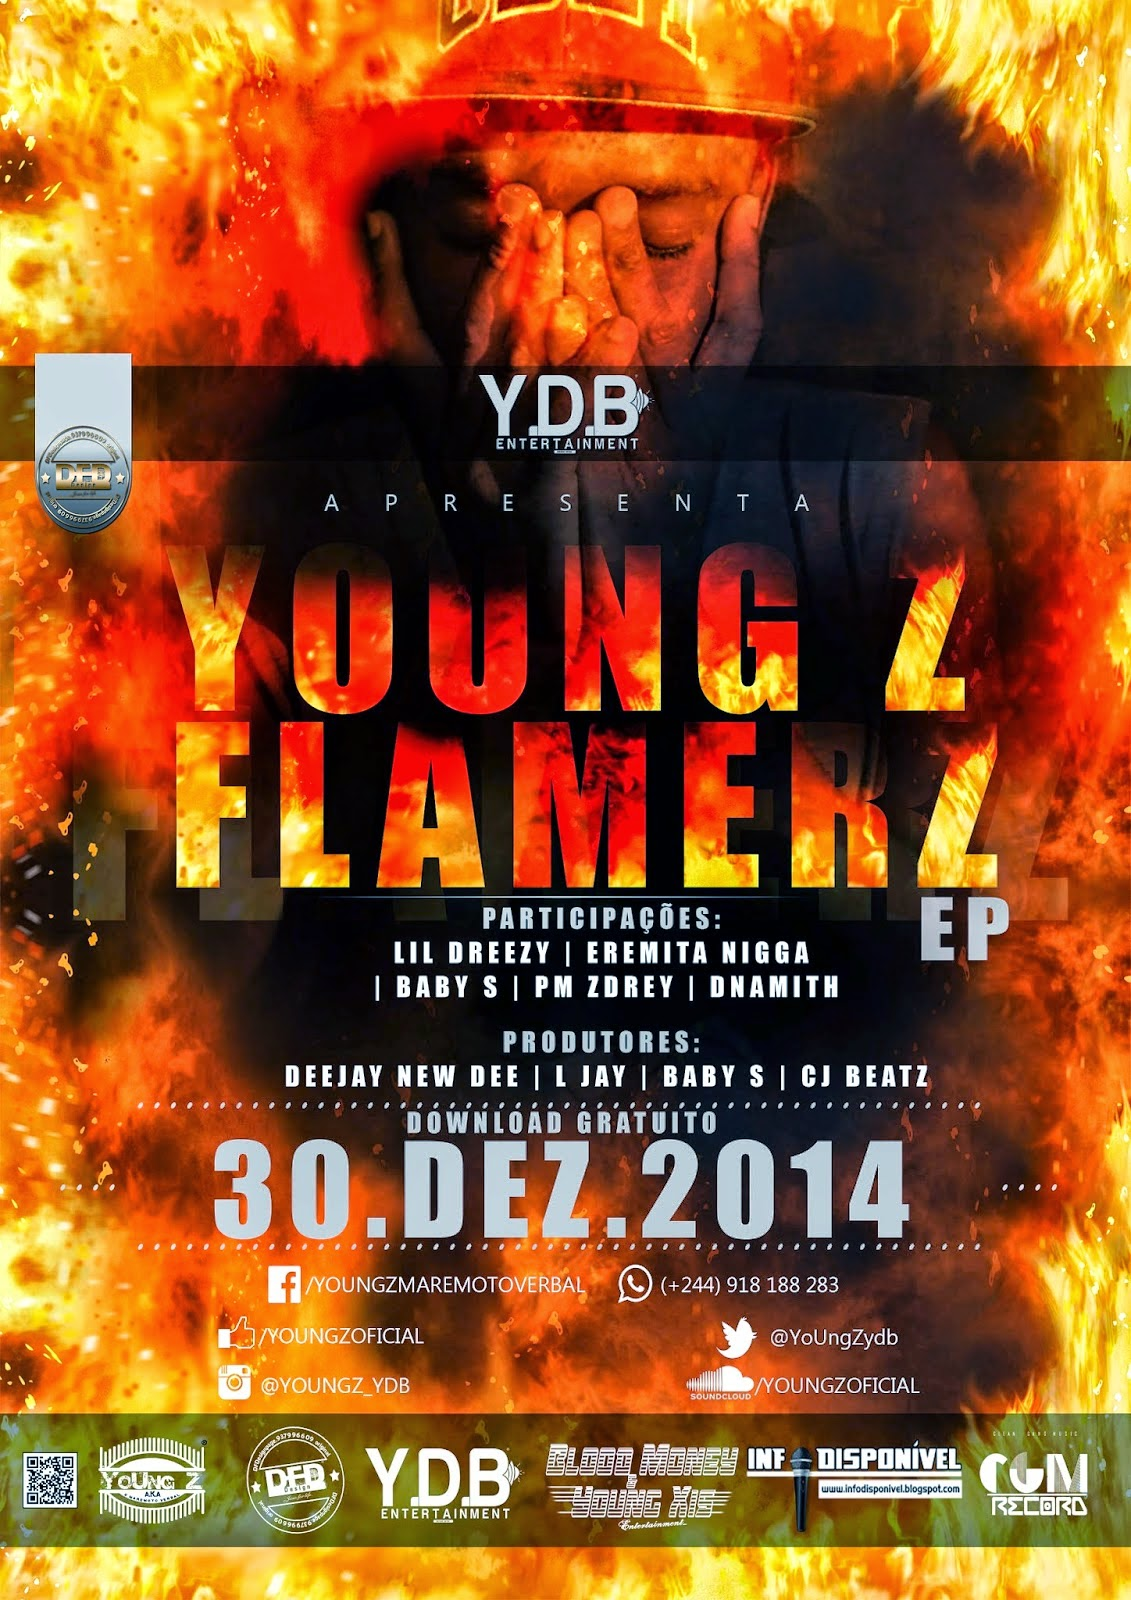 YoUng_Z - EP ``Flamerz´´ 30/12/2014